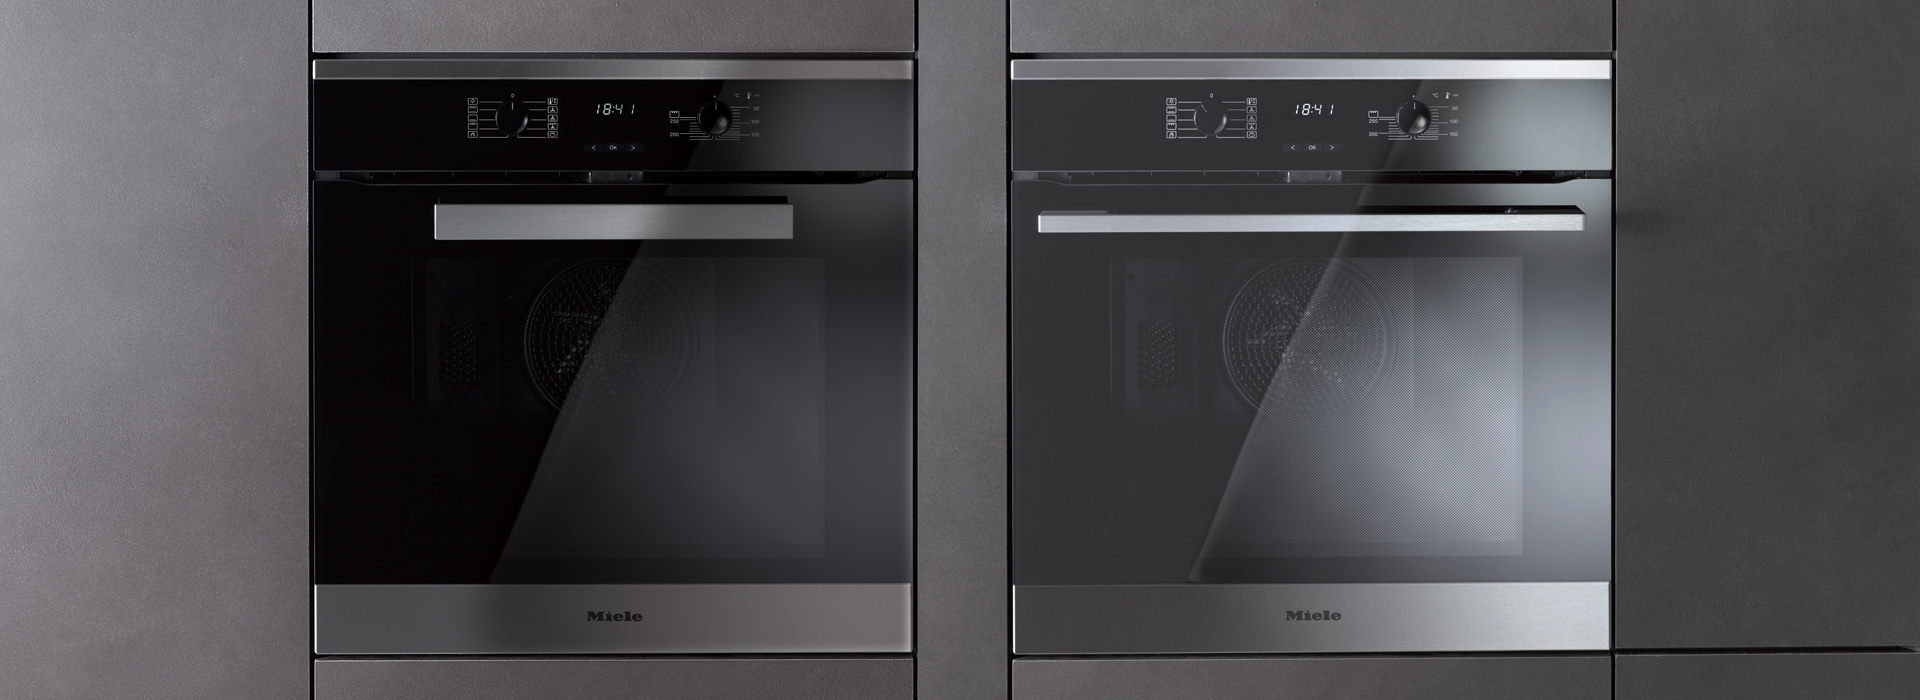 Einbauherd Pyrolyse Miele Pyrolytic Ovens | Self Cleaning Oven » Miele